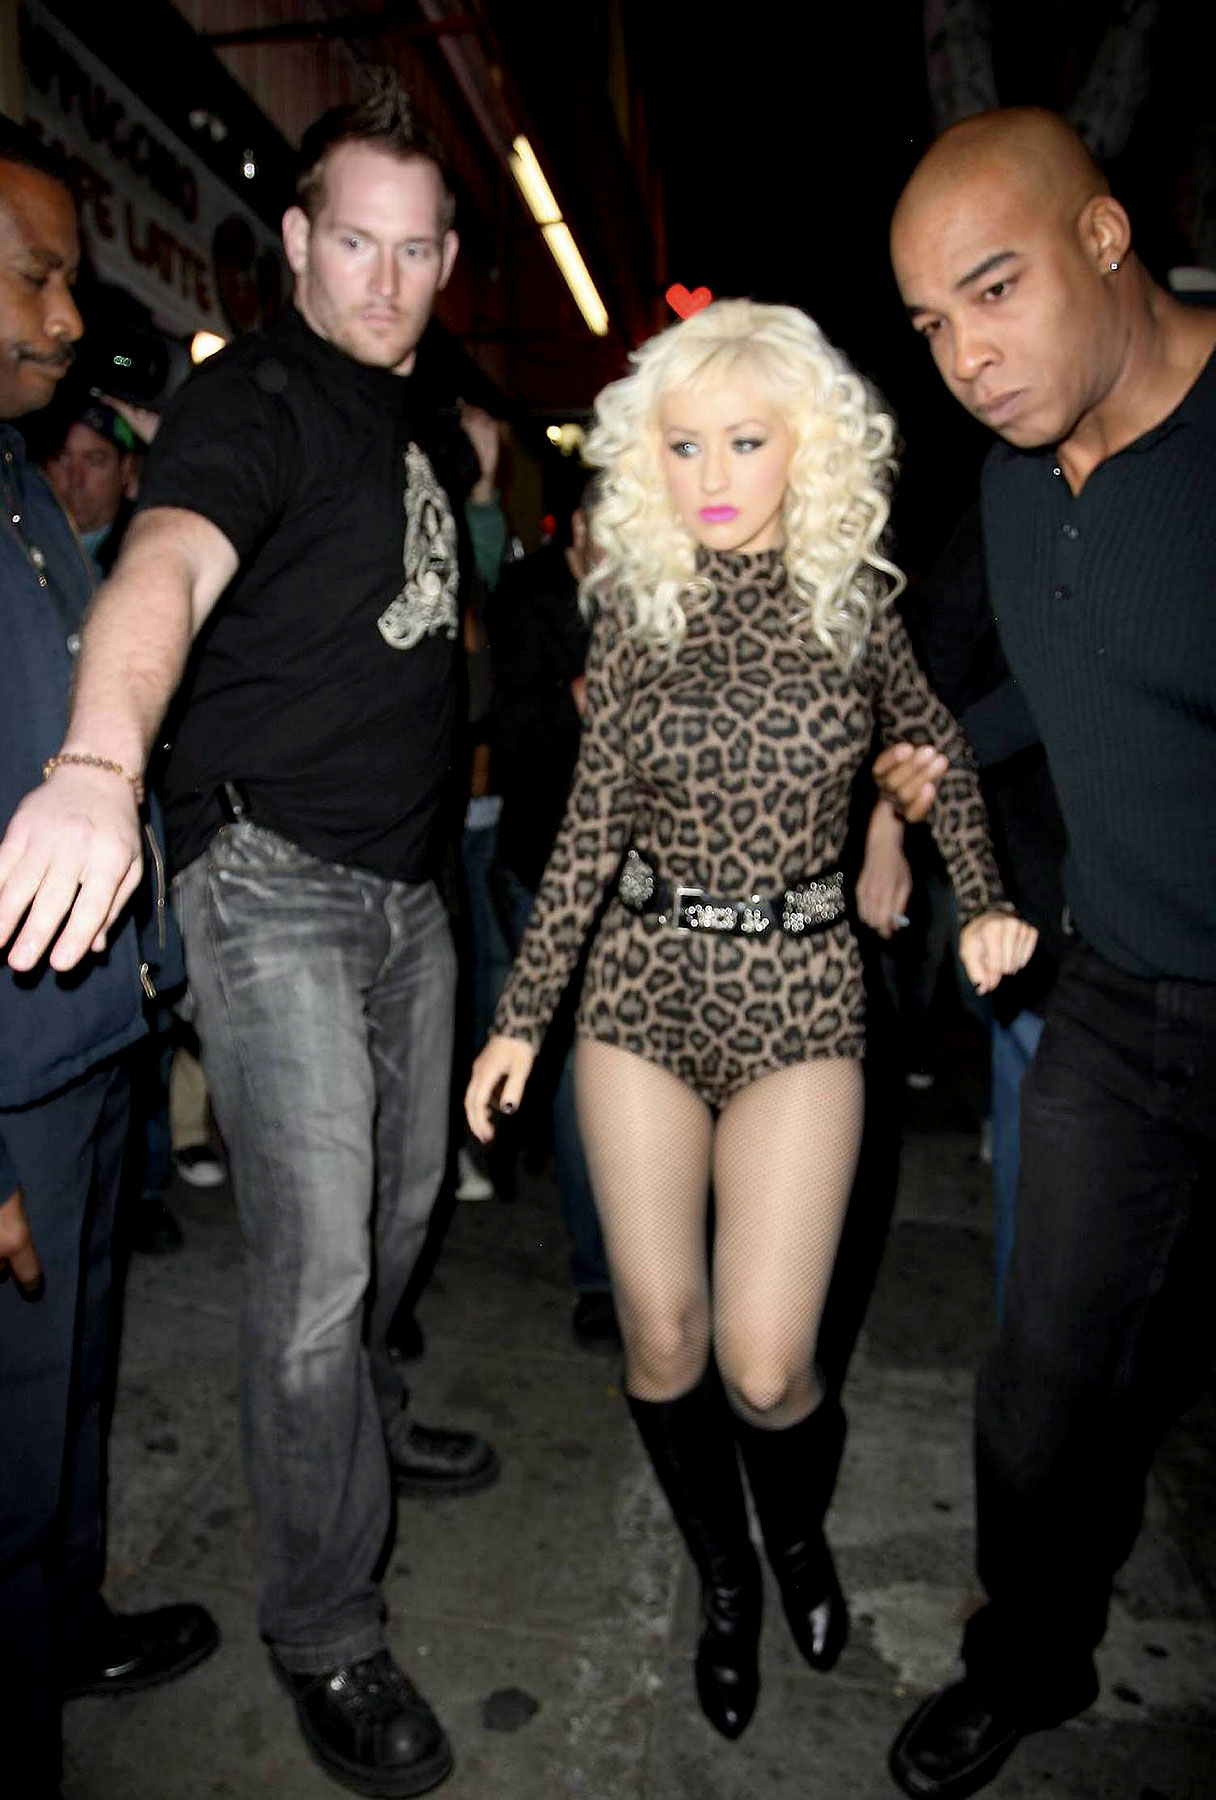 Christina Aguilera Purrs At Perez Hilton's Birthday Party